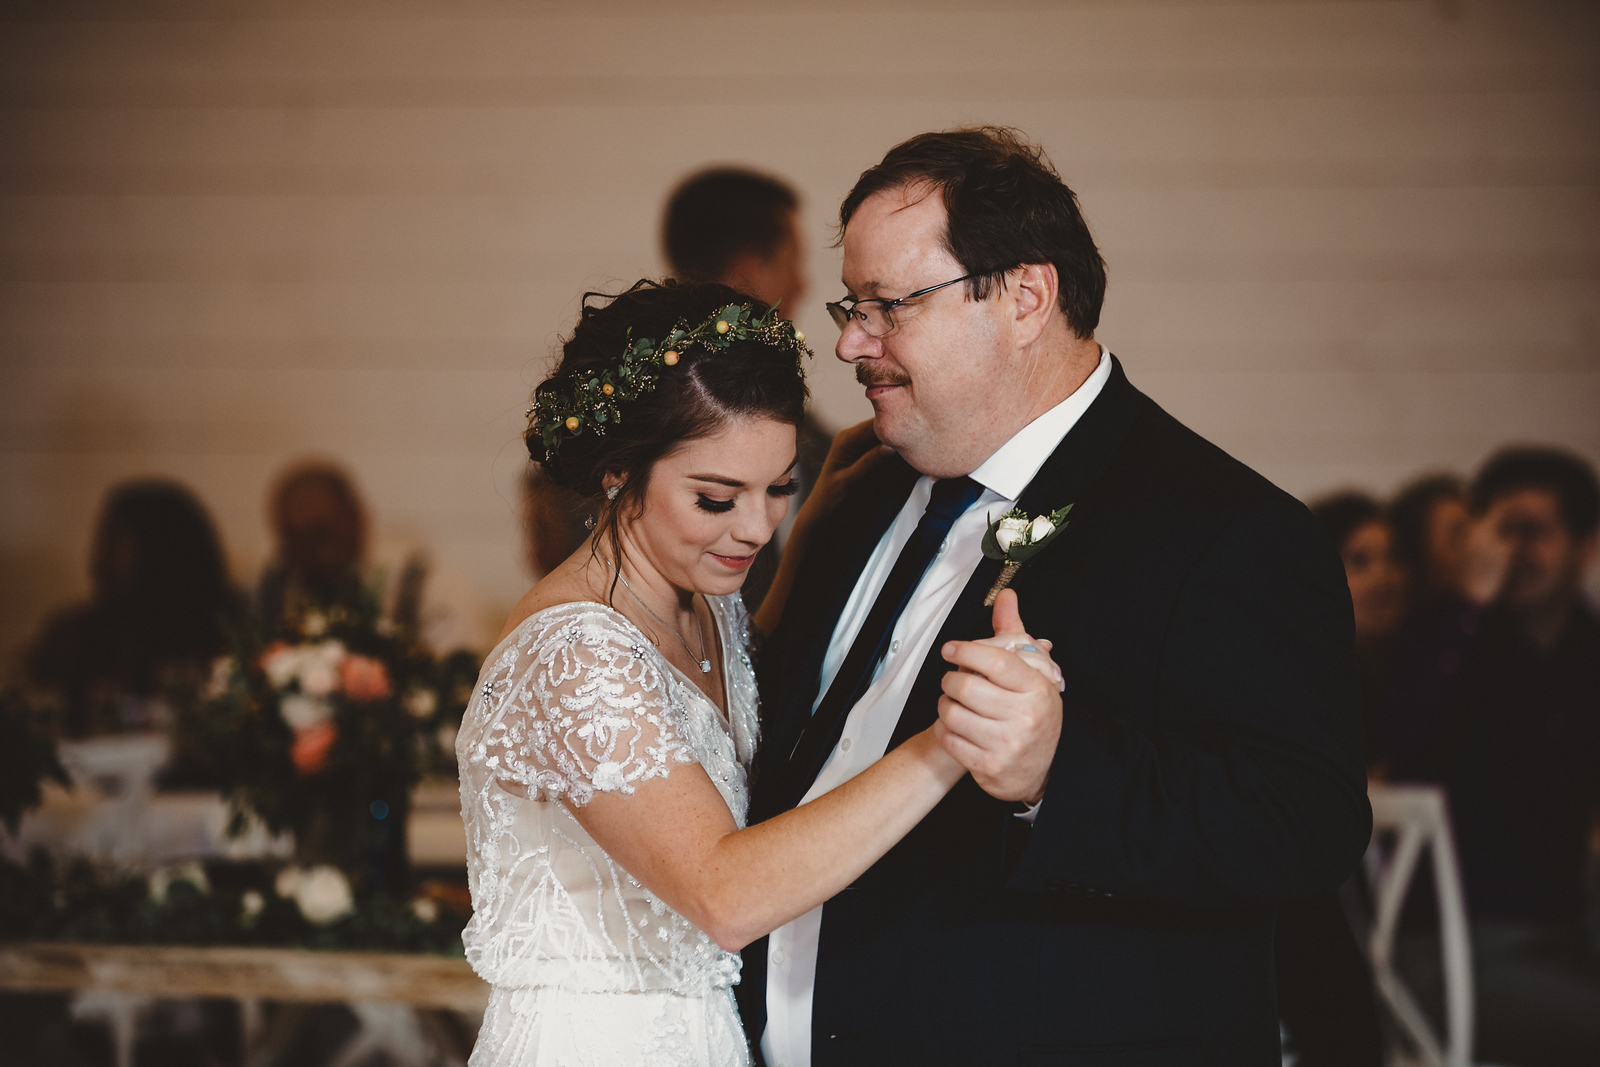 a father and bride sharing their first dance together